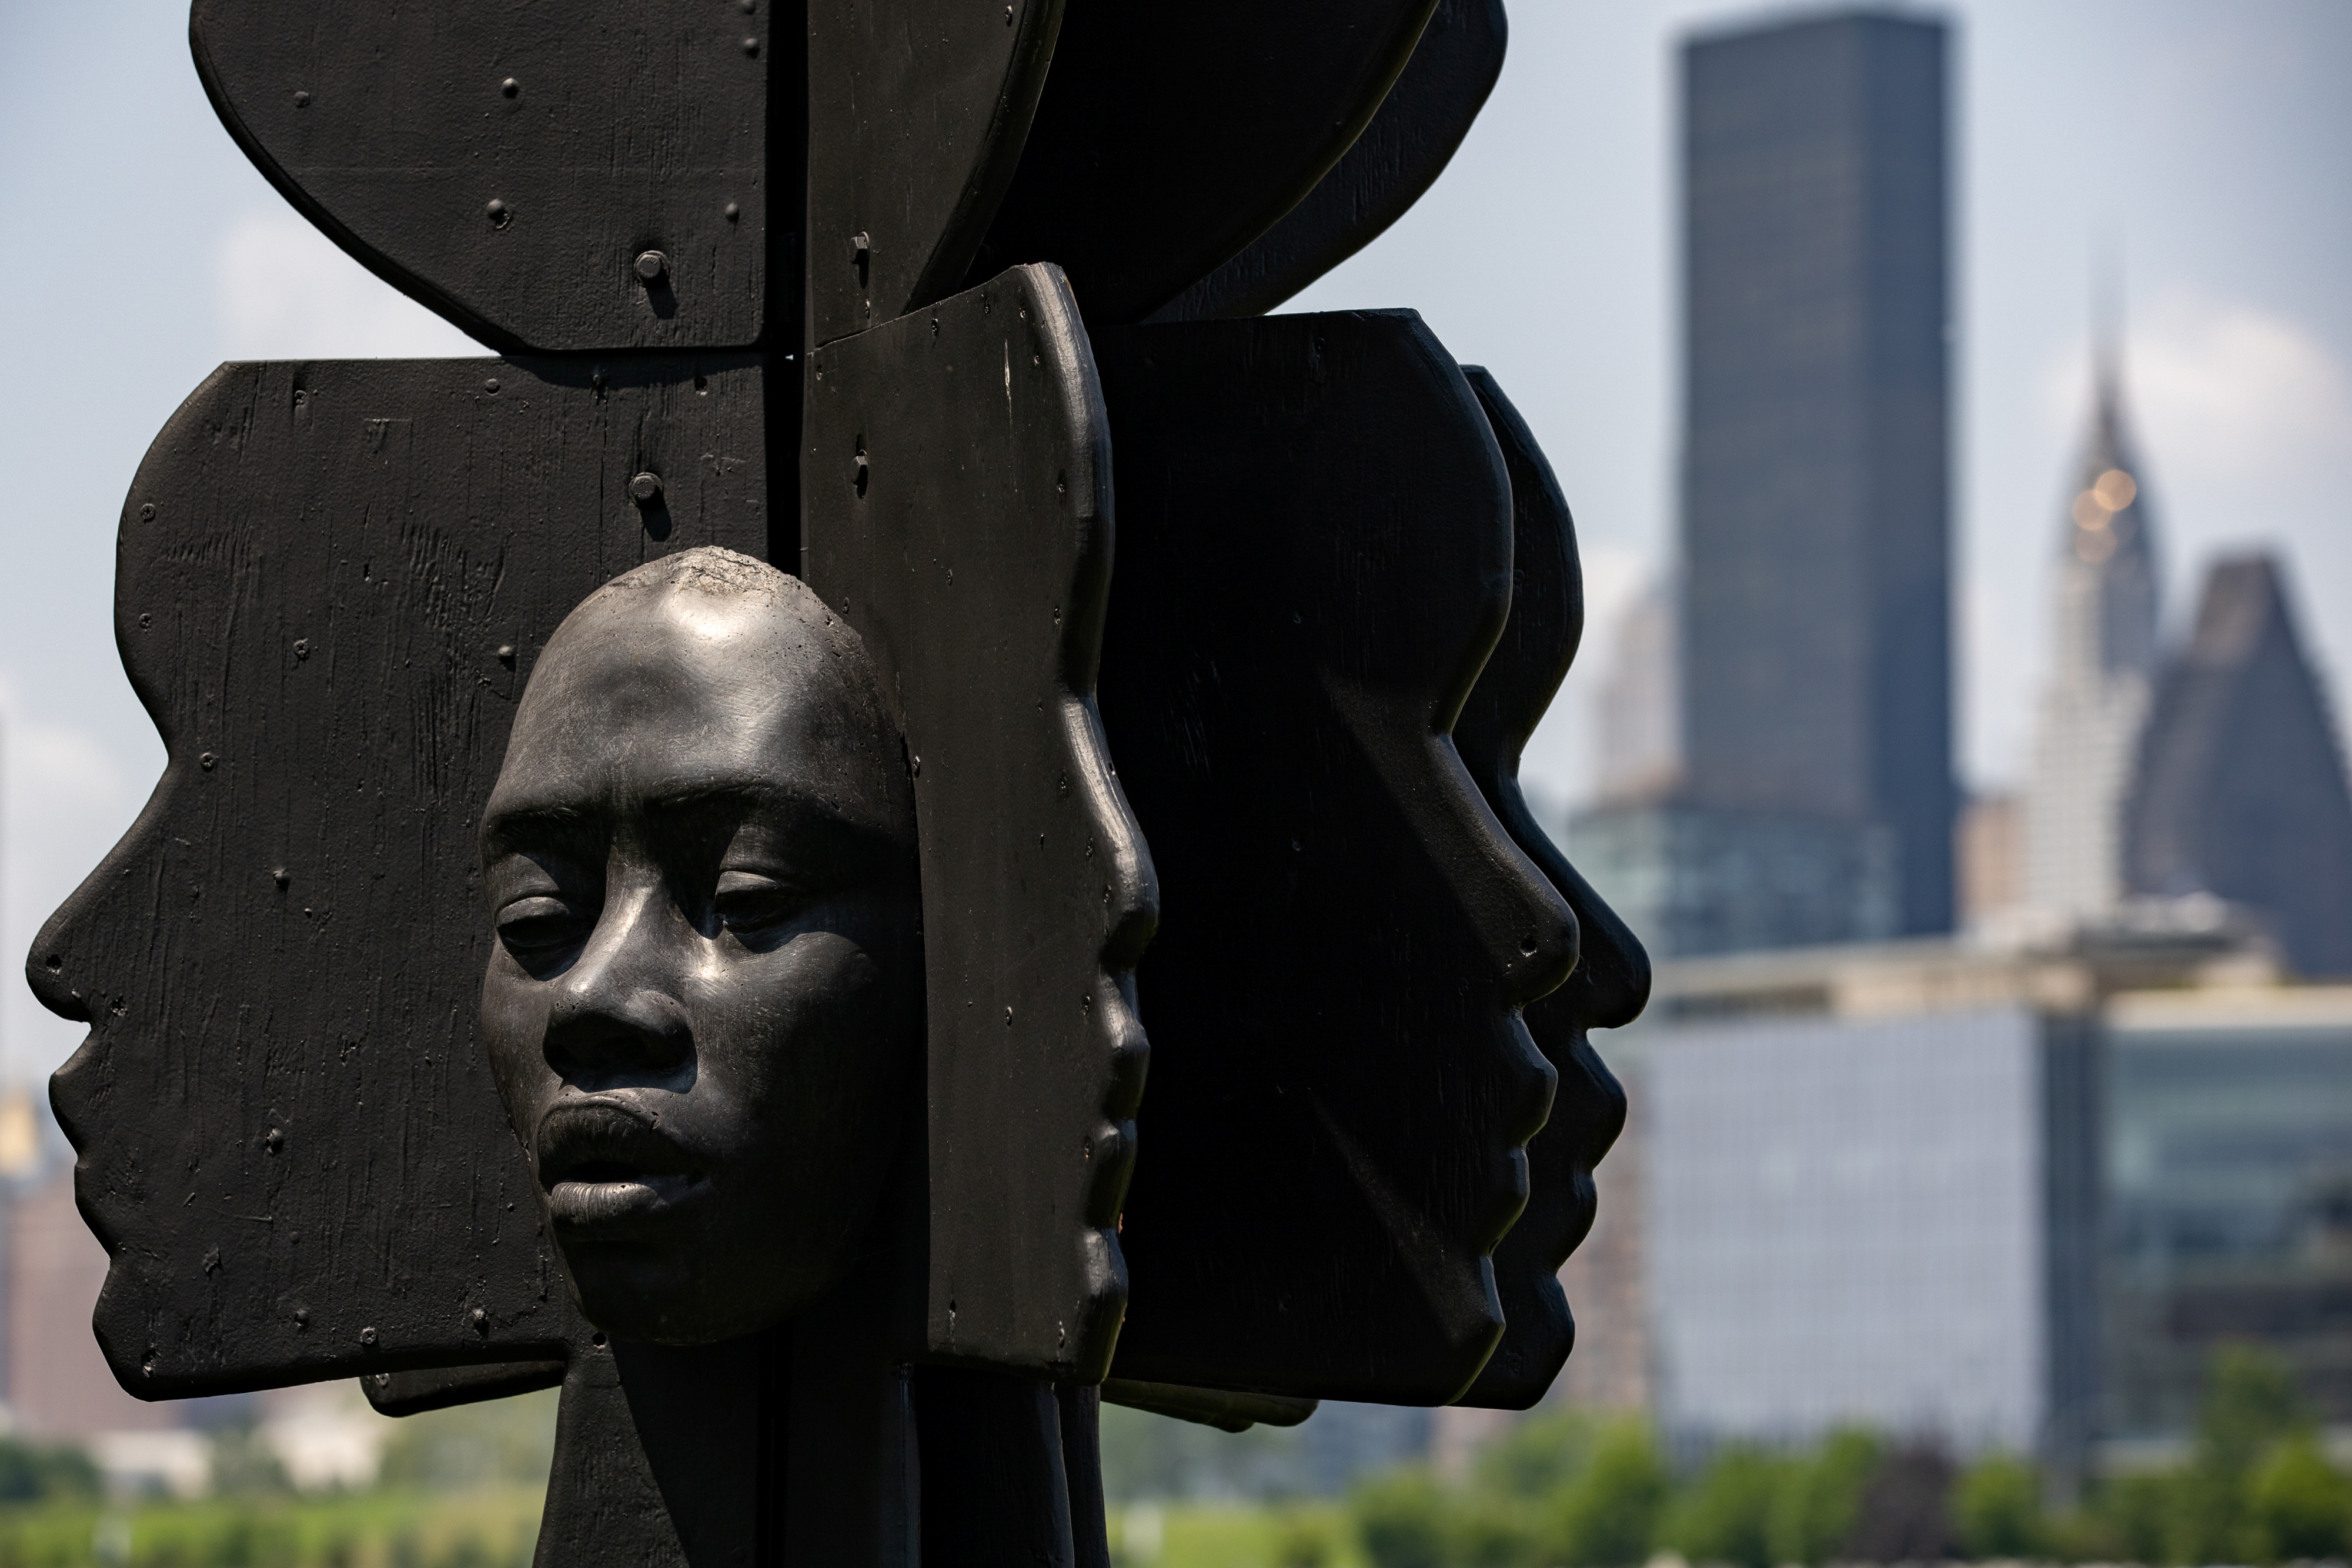 A sculpture by artist Tanda Francis called